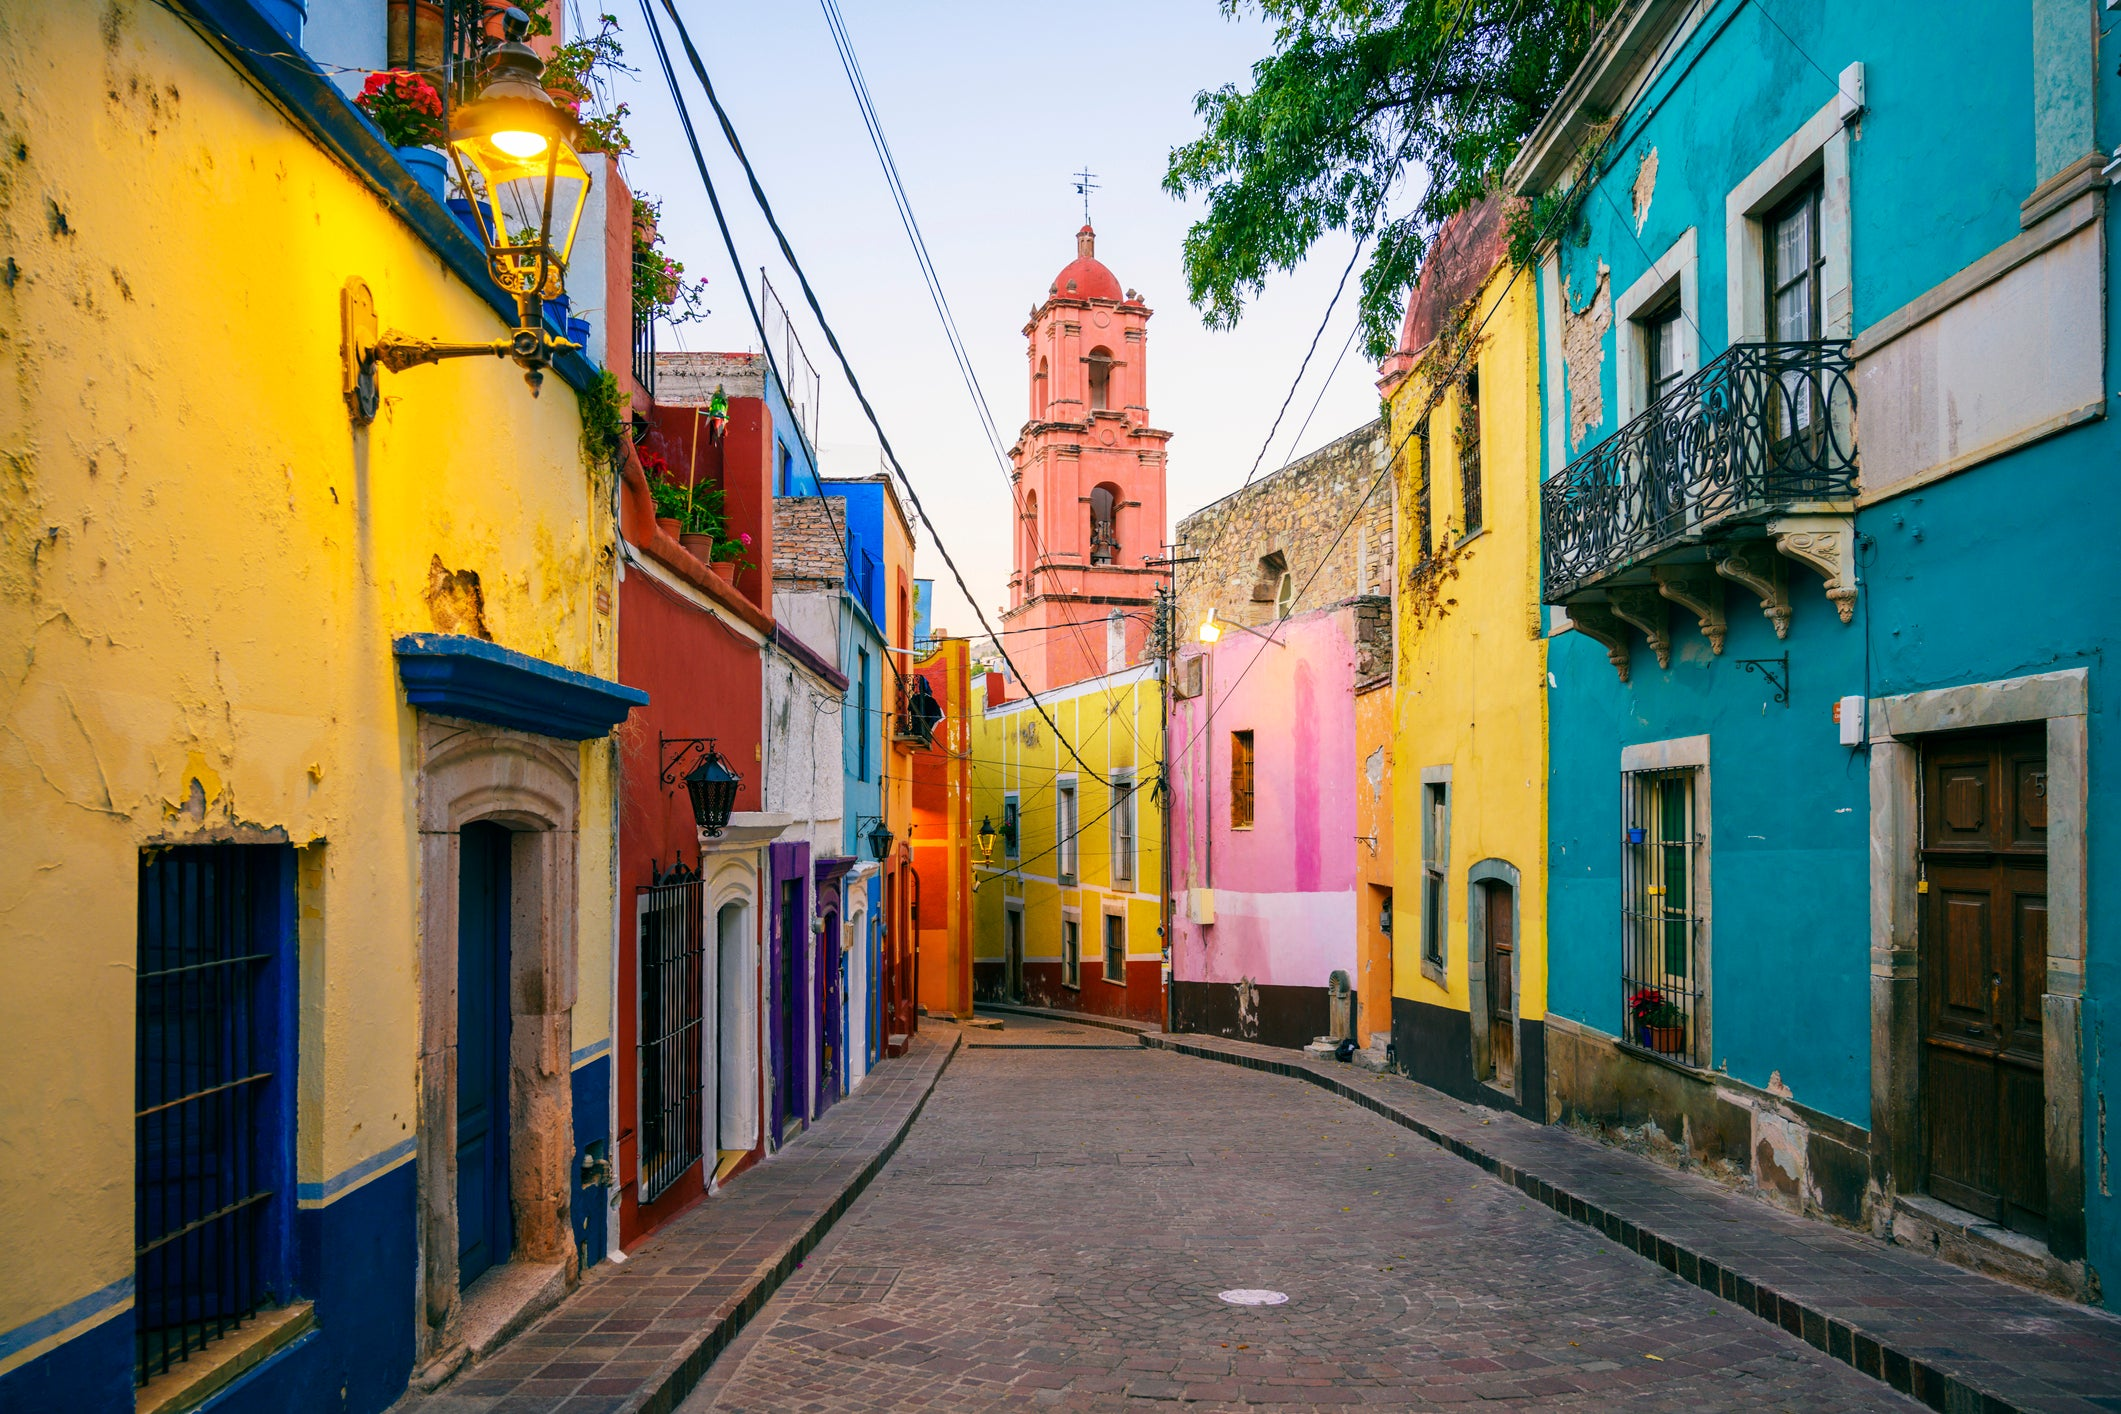 13 of the most beautiful villages and small towns in Mexico - The Points Guy UK